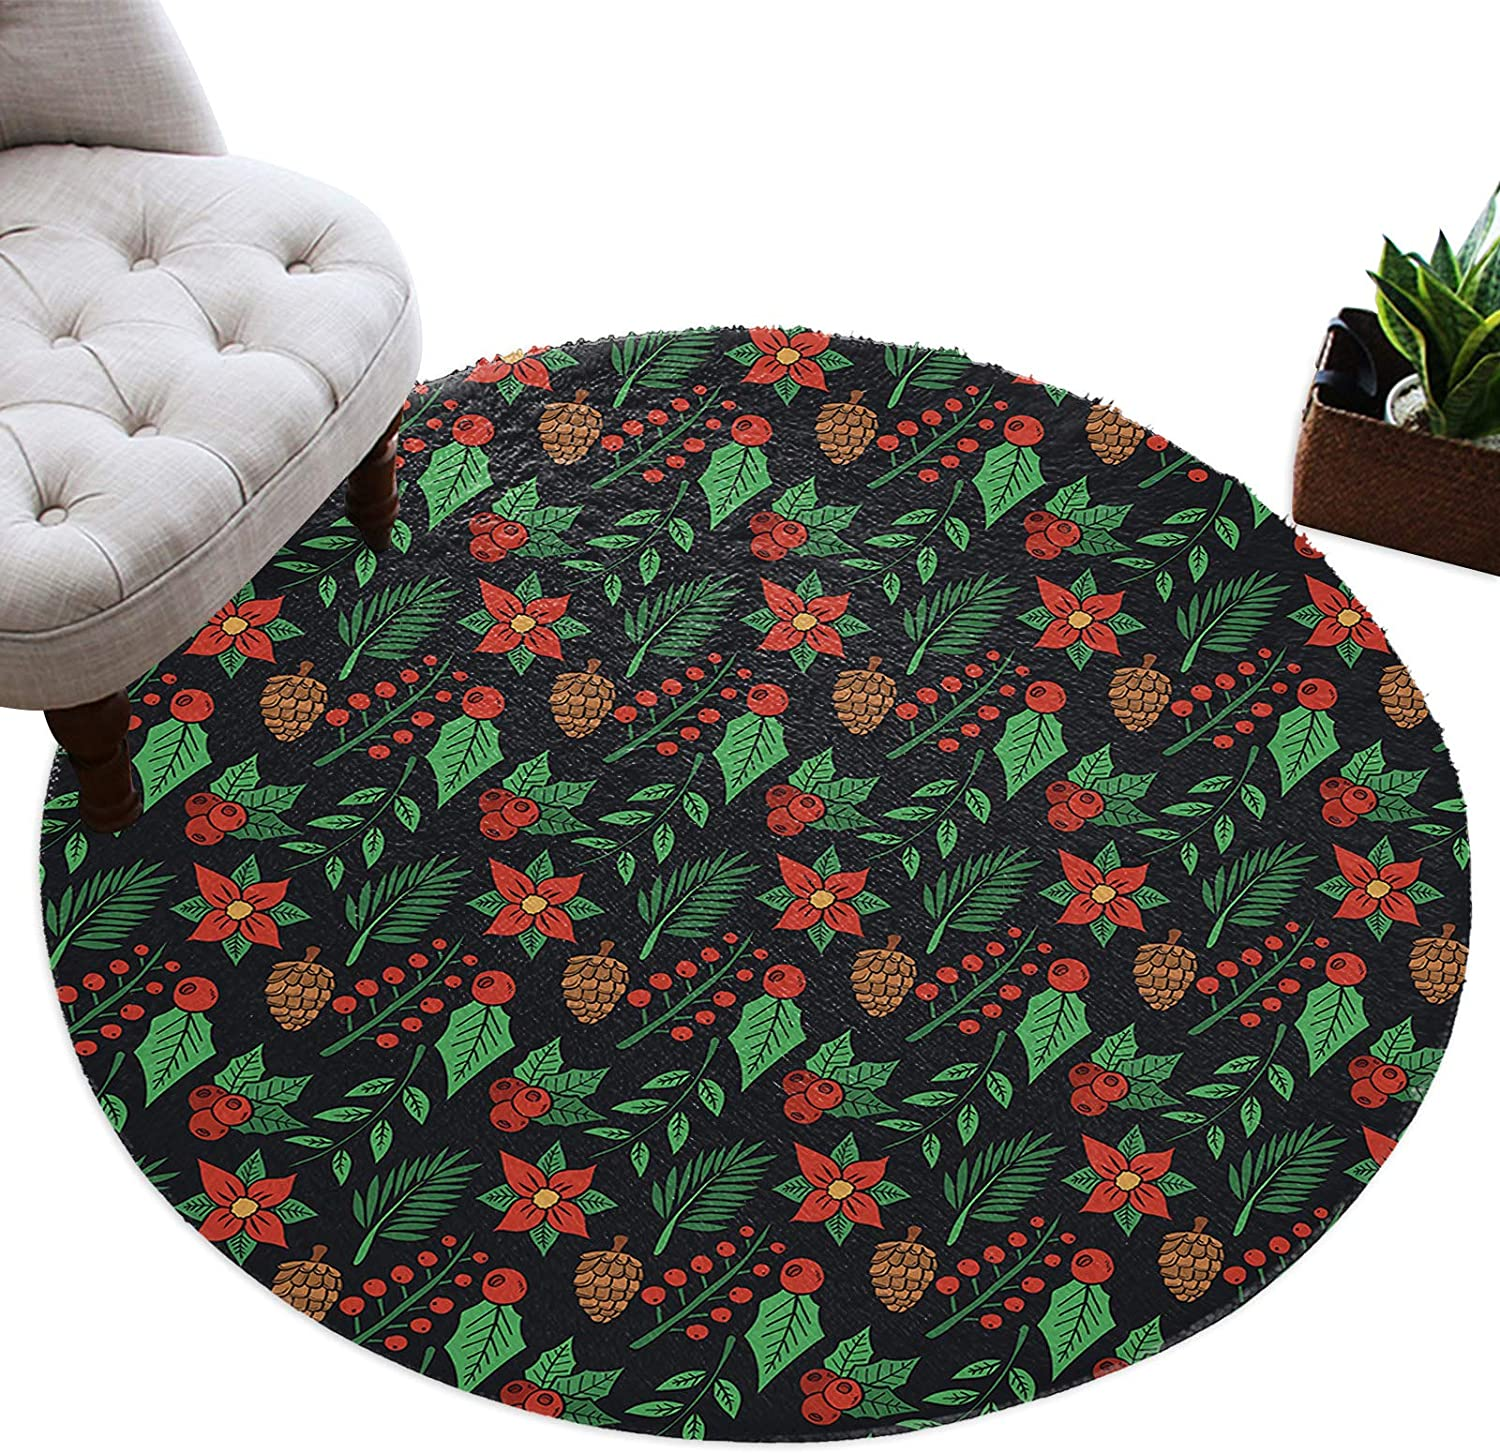 Zadaling Plush Round Area Rug Max 49% OFF Shaggy Floor Chris Decor Home Product Mat